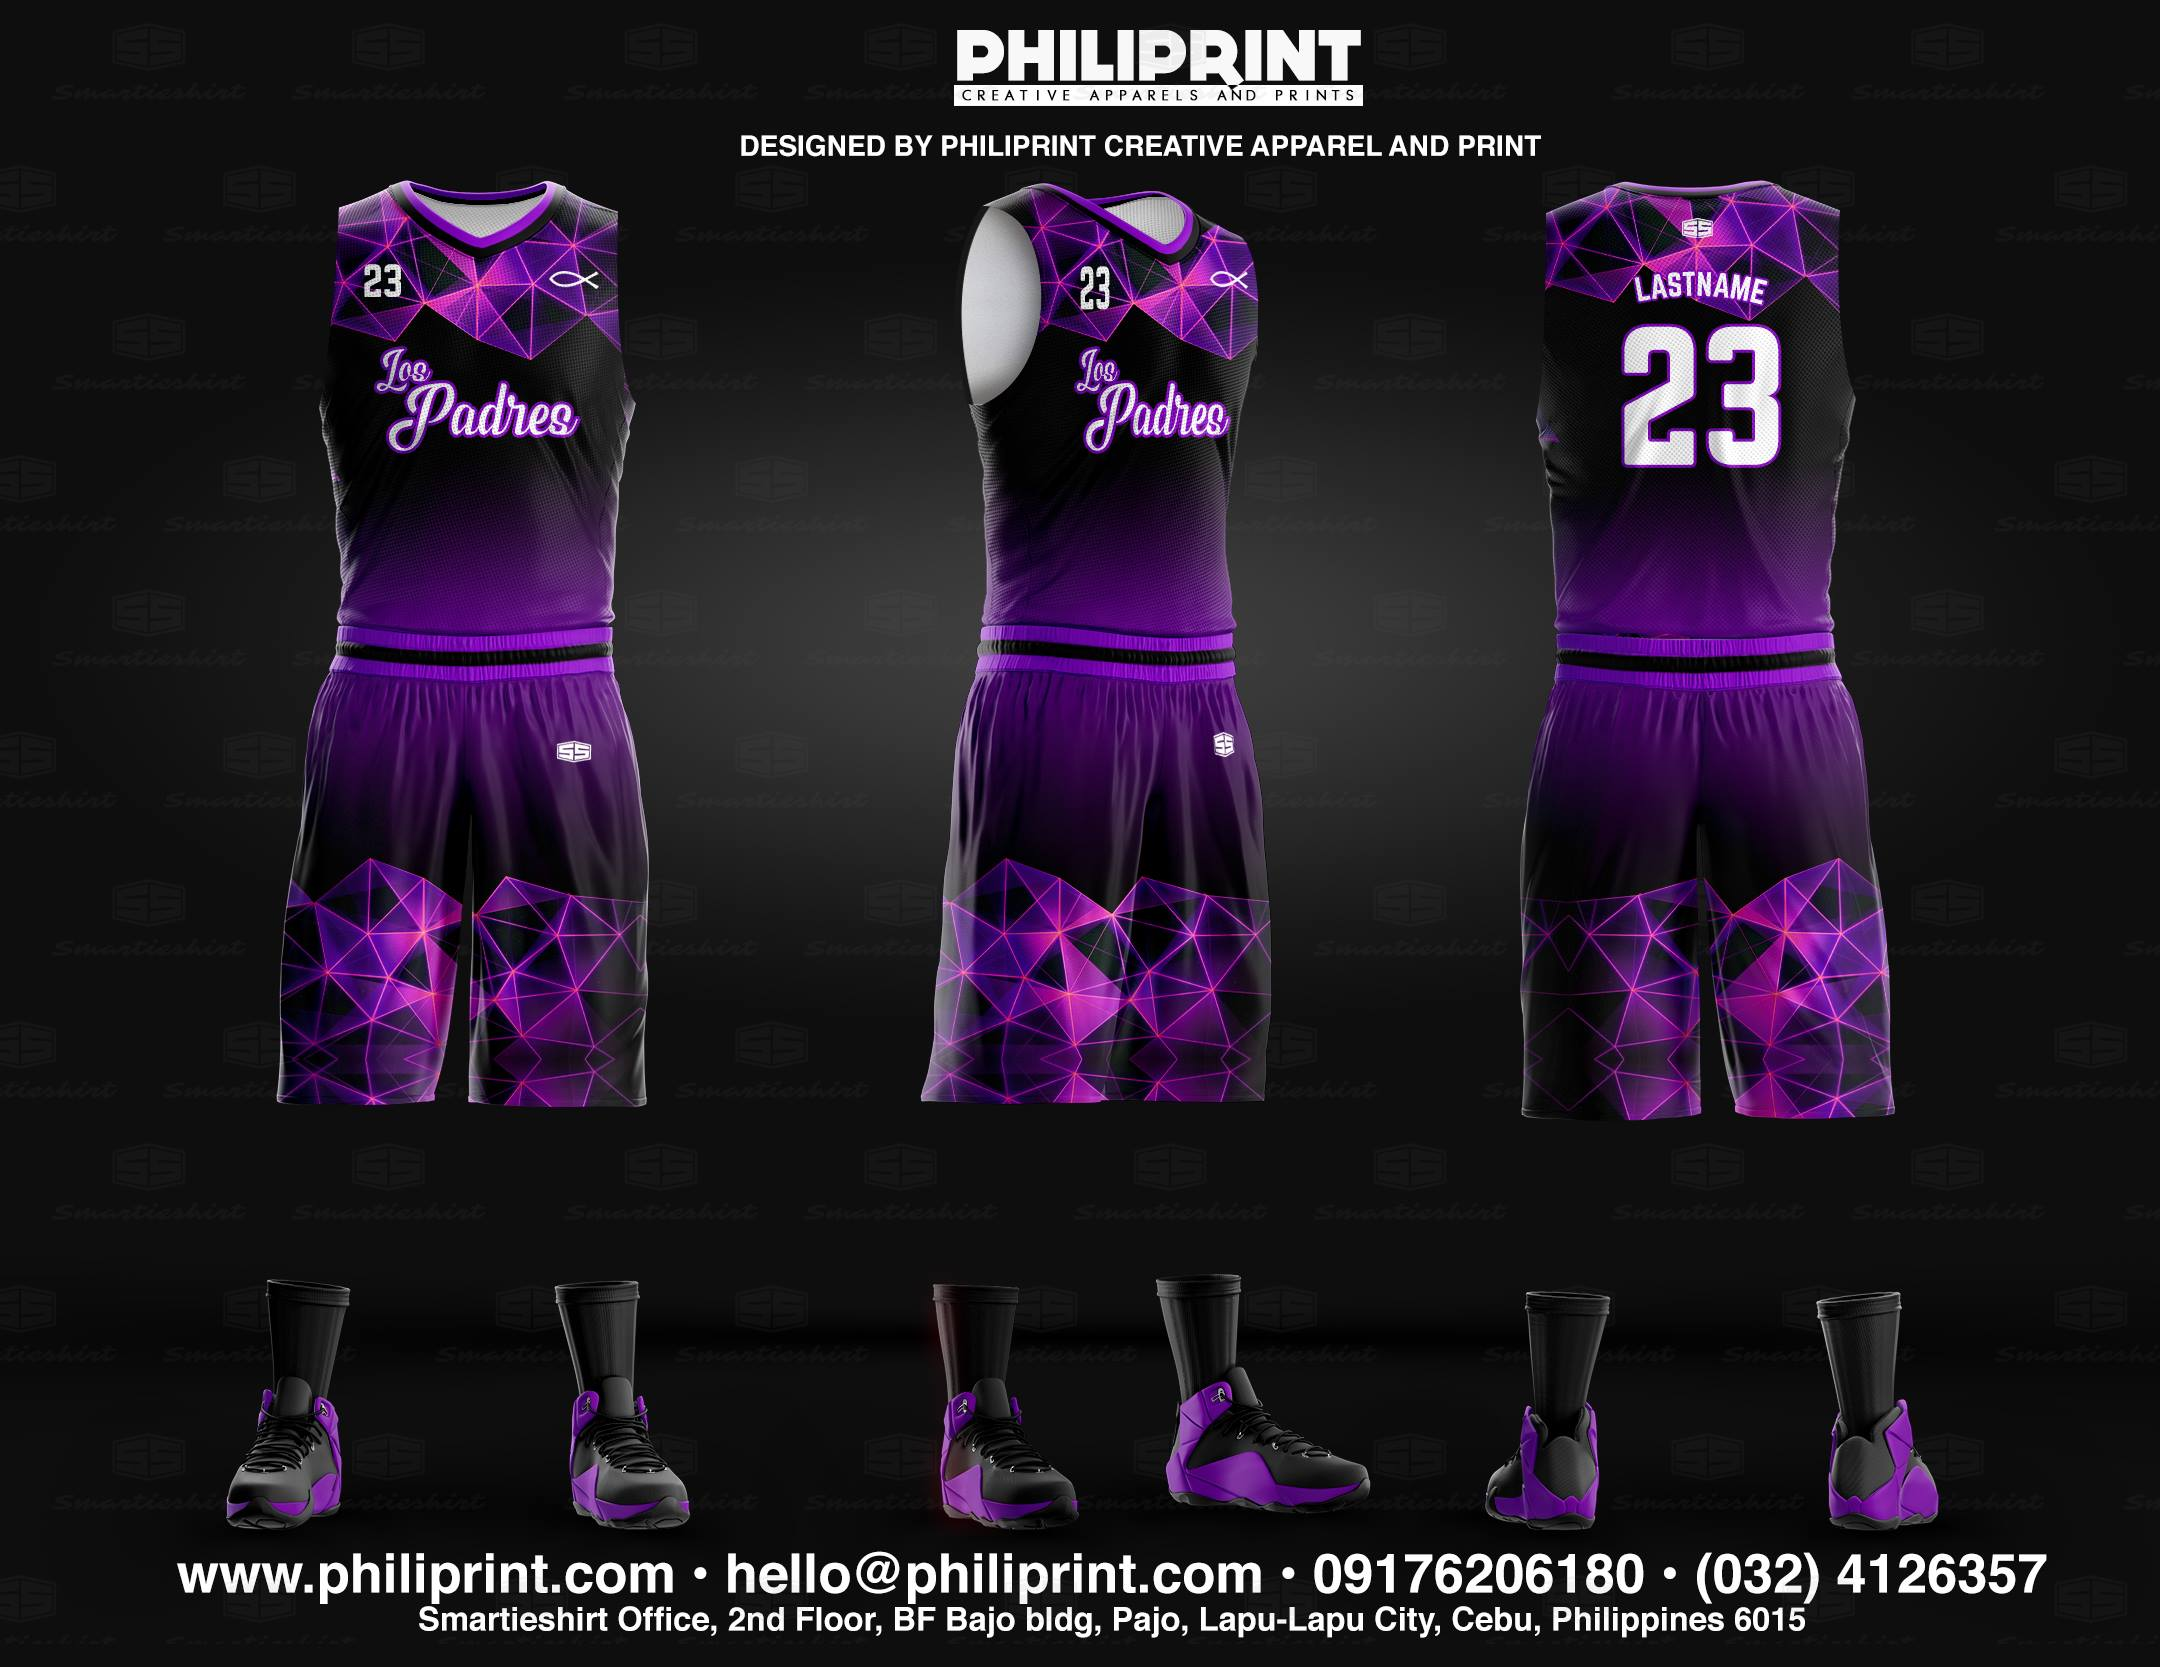 The Padres Full Sublimation Basketball Jersey Philiprint